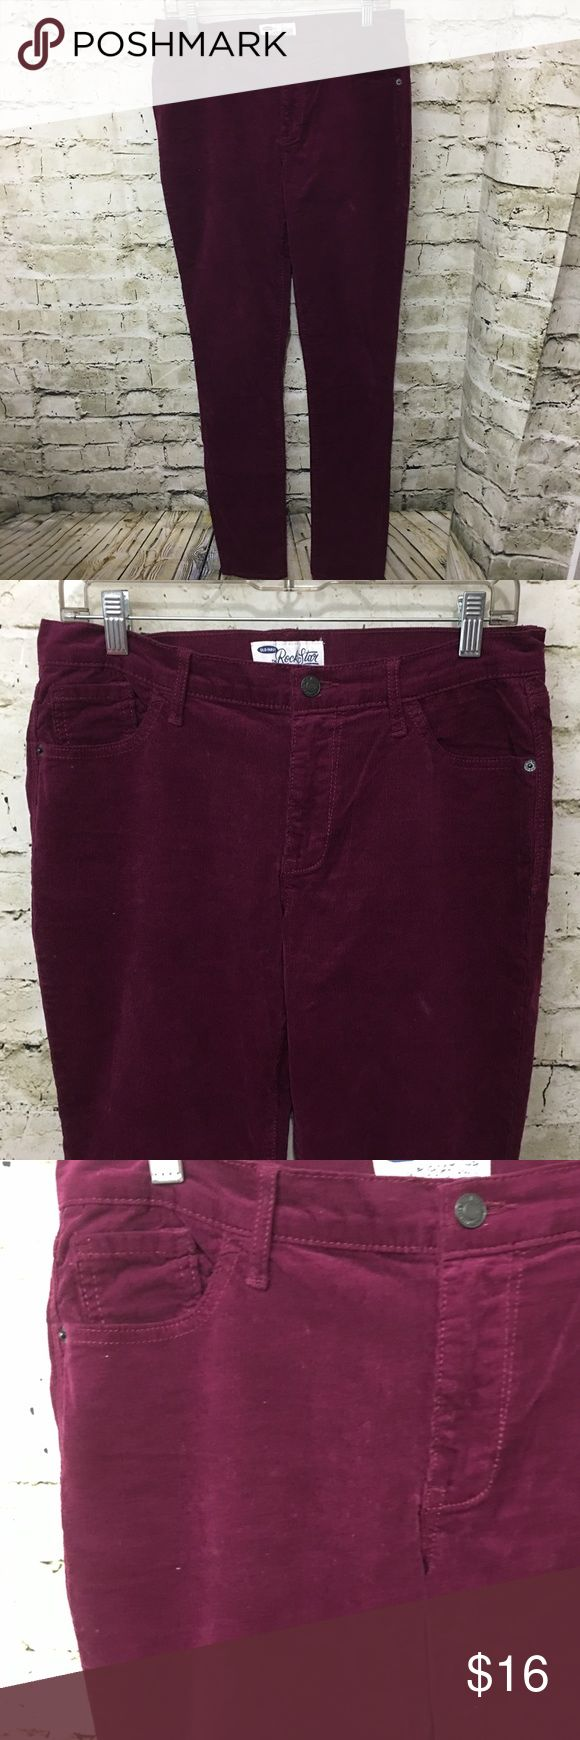 """Old Navy RockStar Purple Skinny Corduroy Pants Old Navy The Rockstar Women's Purple Corduroy Skinny Pants Size 10 Tall in gently used condition with no flaws.  Measurements: Waist: 16"""" Rise: 9"""" Inseam: 33"""" Old Navy Pants Skinny"""